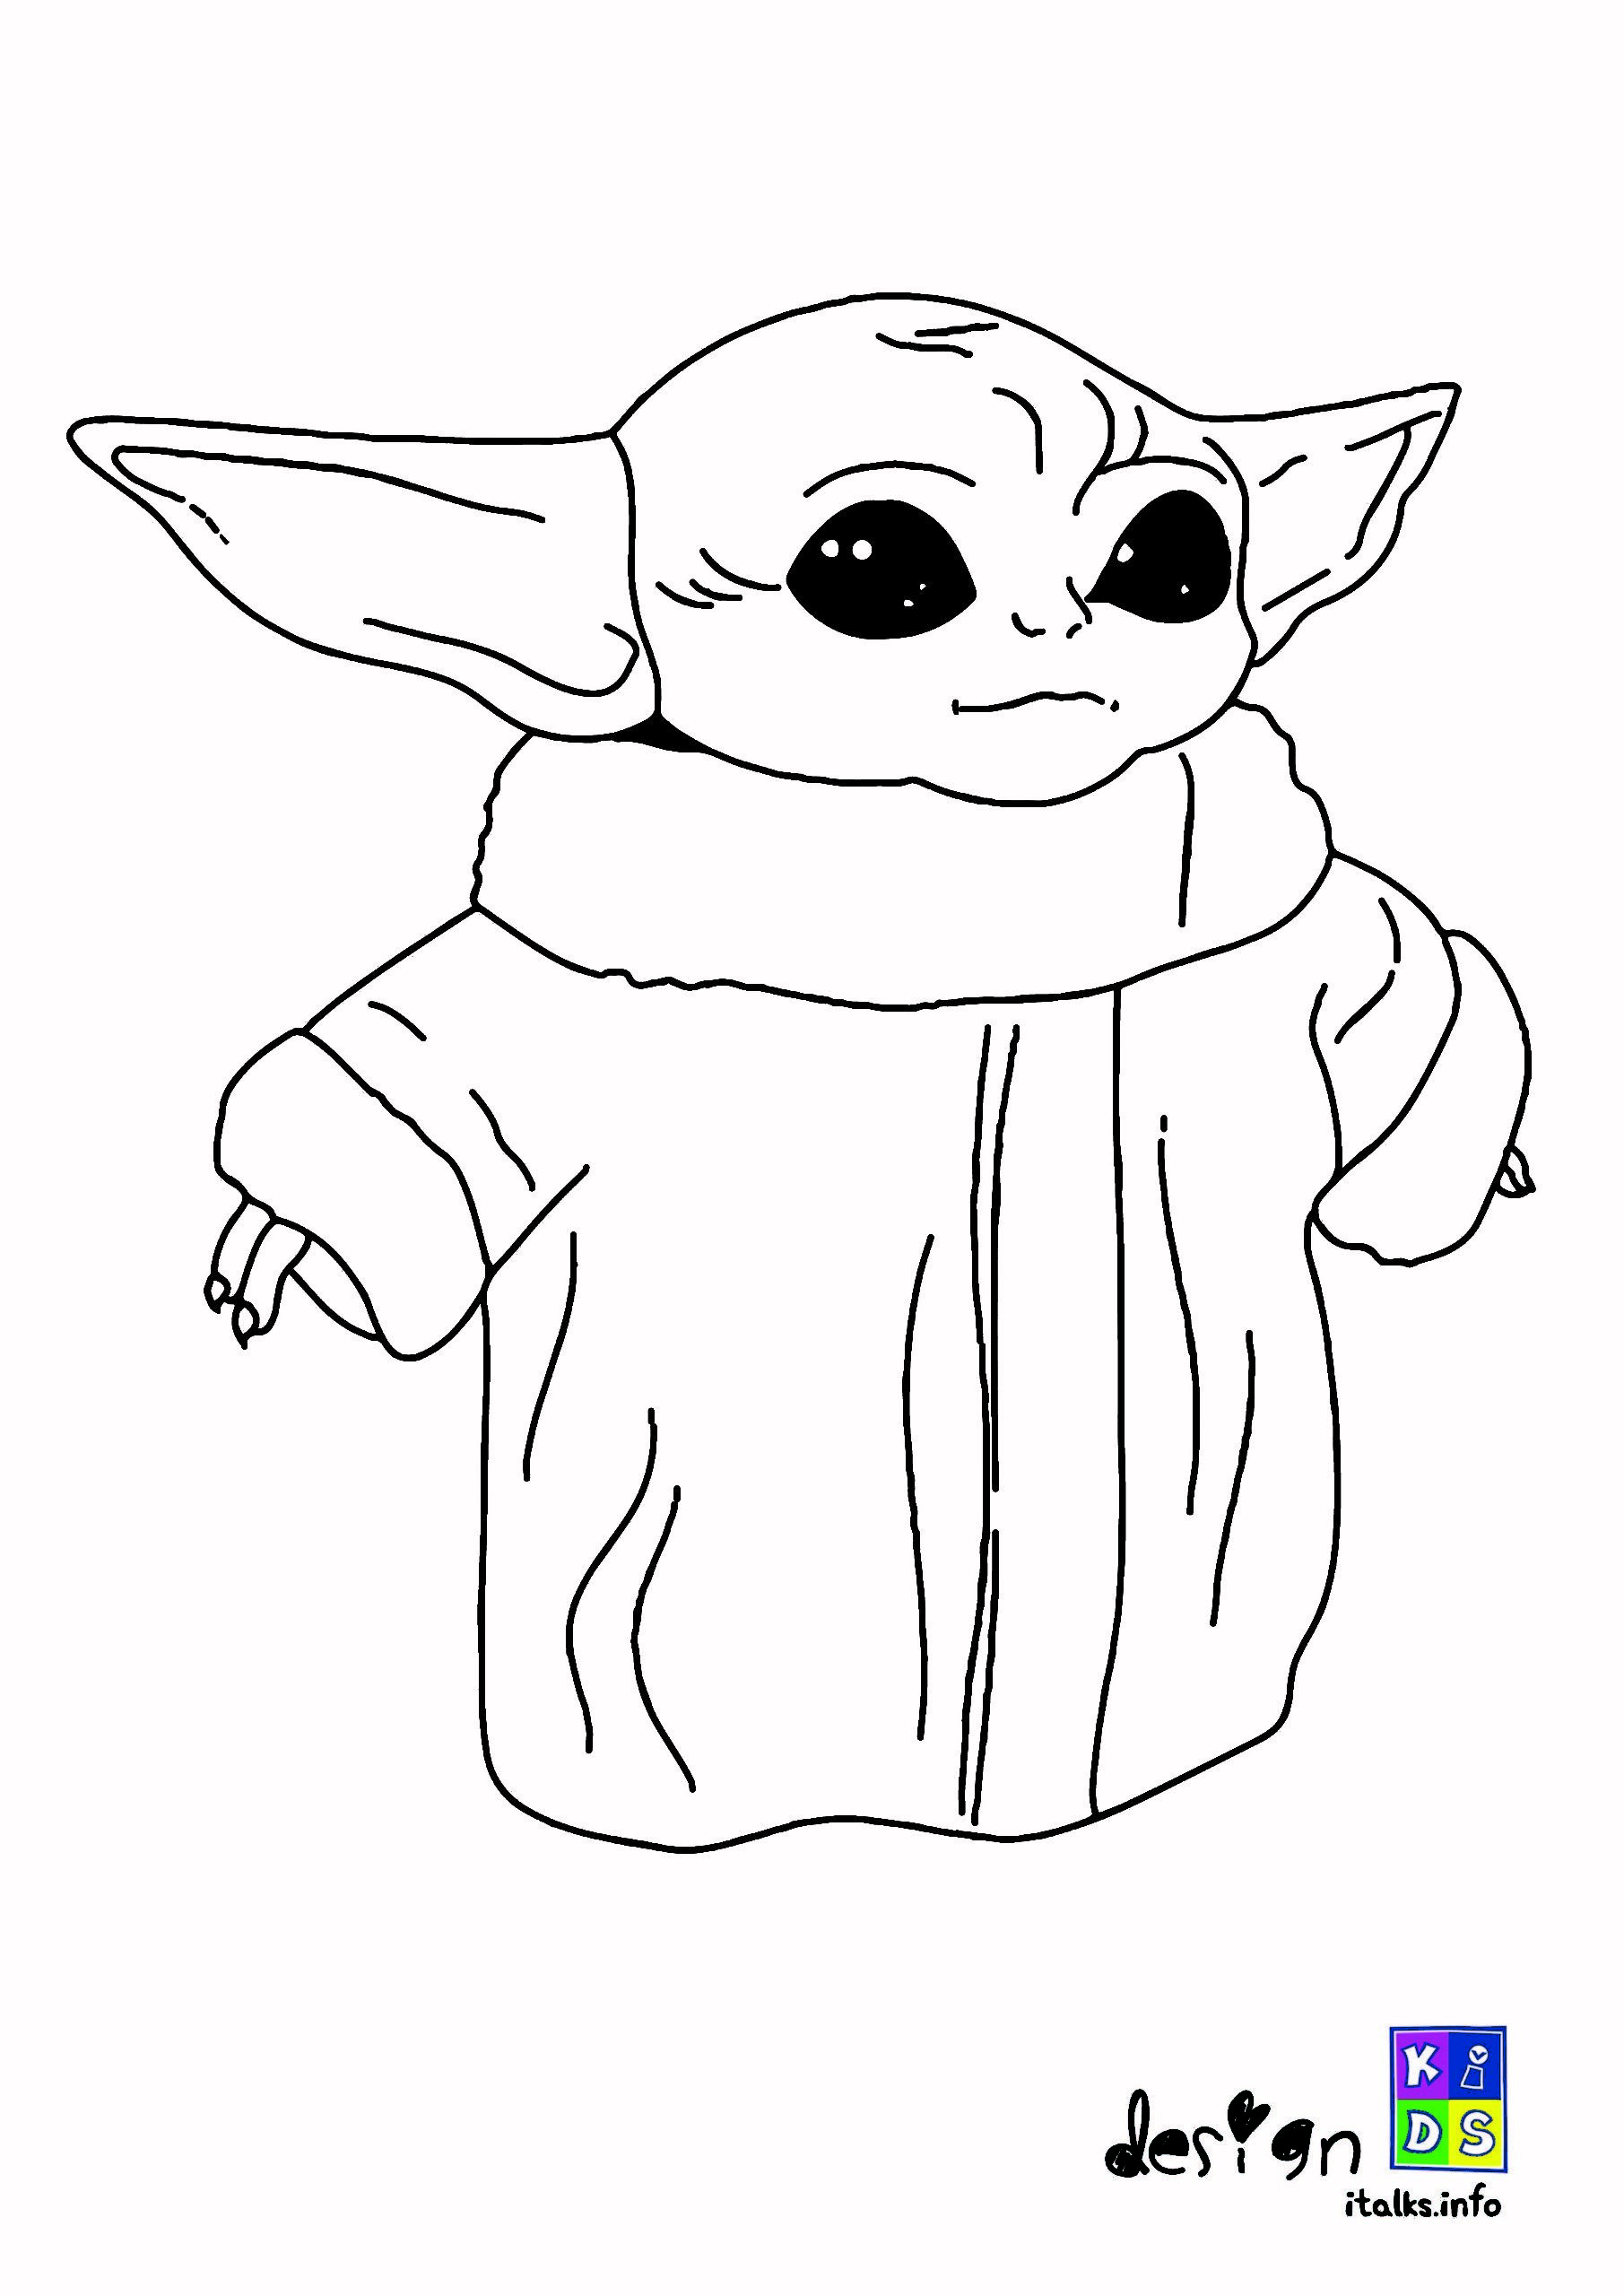 Tiefighters Baby Yoda Coloring Page Art By Tony Helms Ig Disney Coloring Pages Printables Disney Coloring Pages Baby Coloring Pages